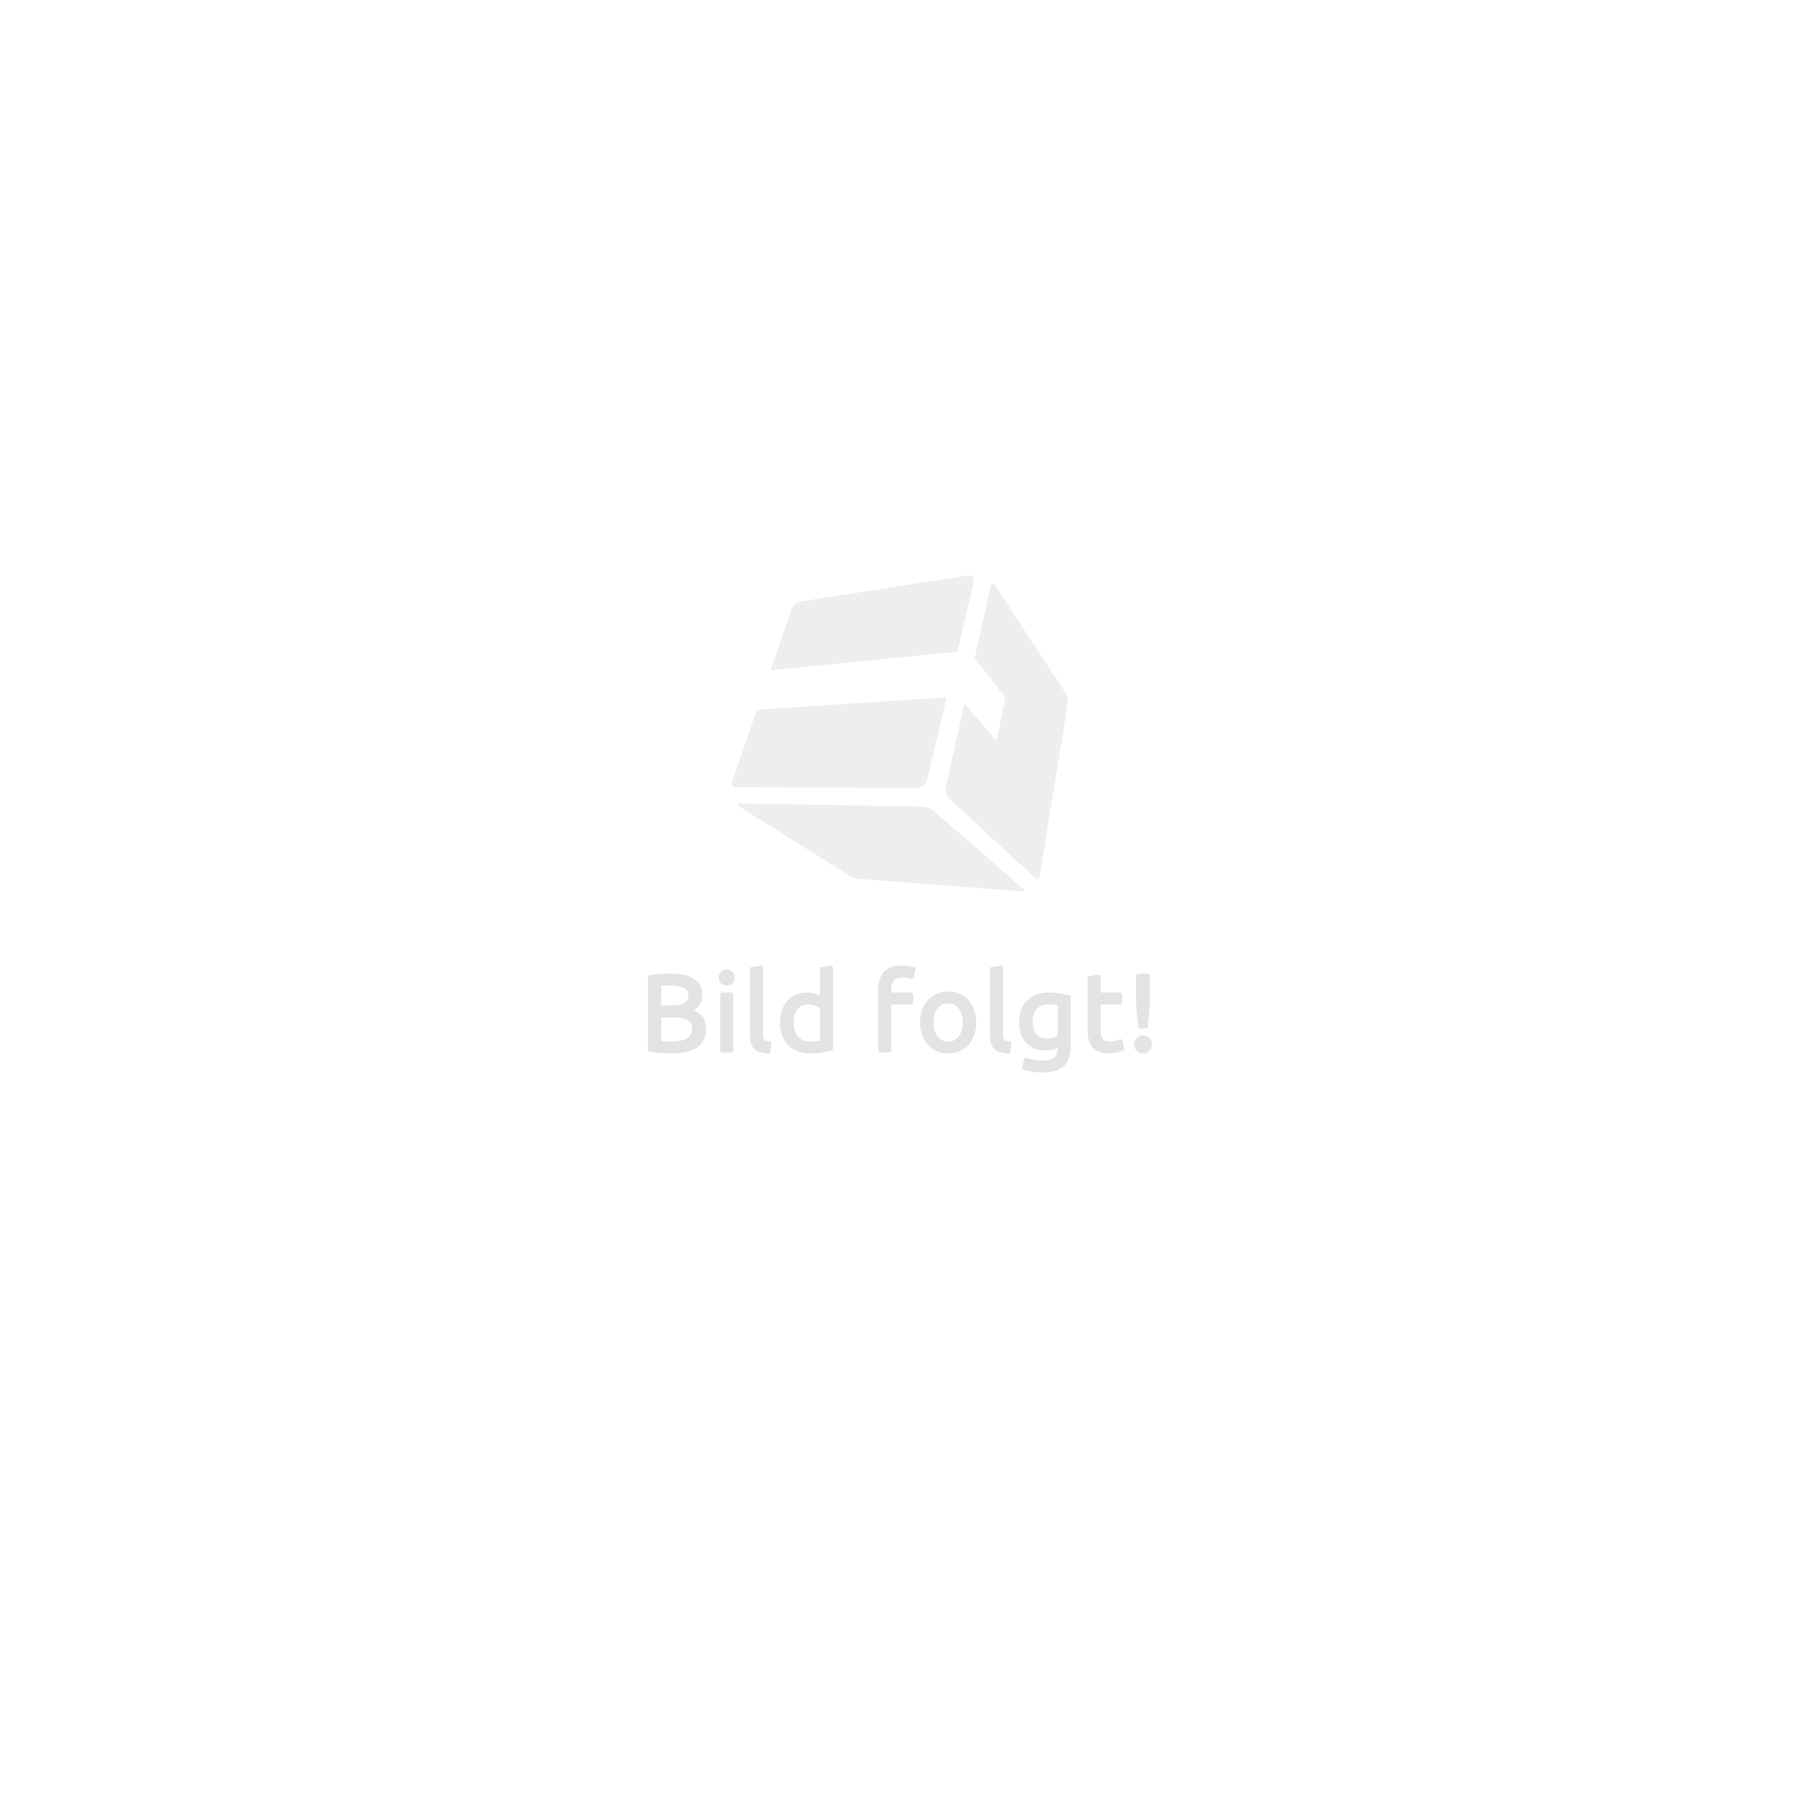 Set de 3 Valises Trolley Rigides - ABS